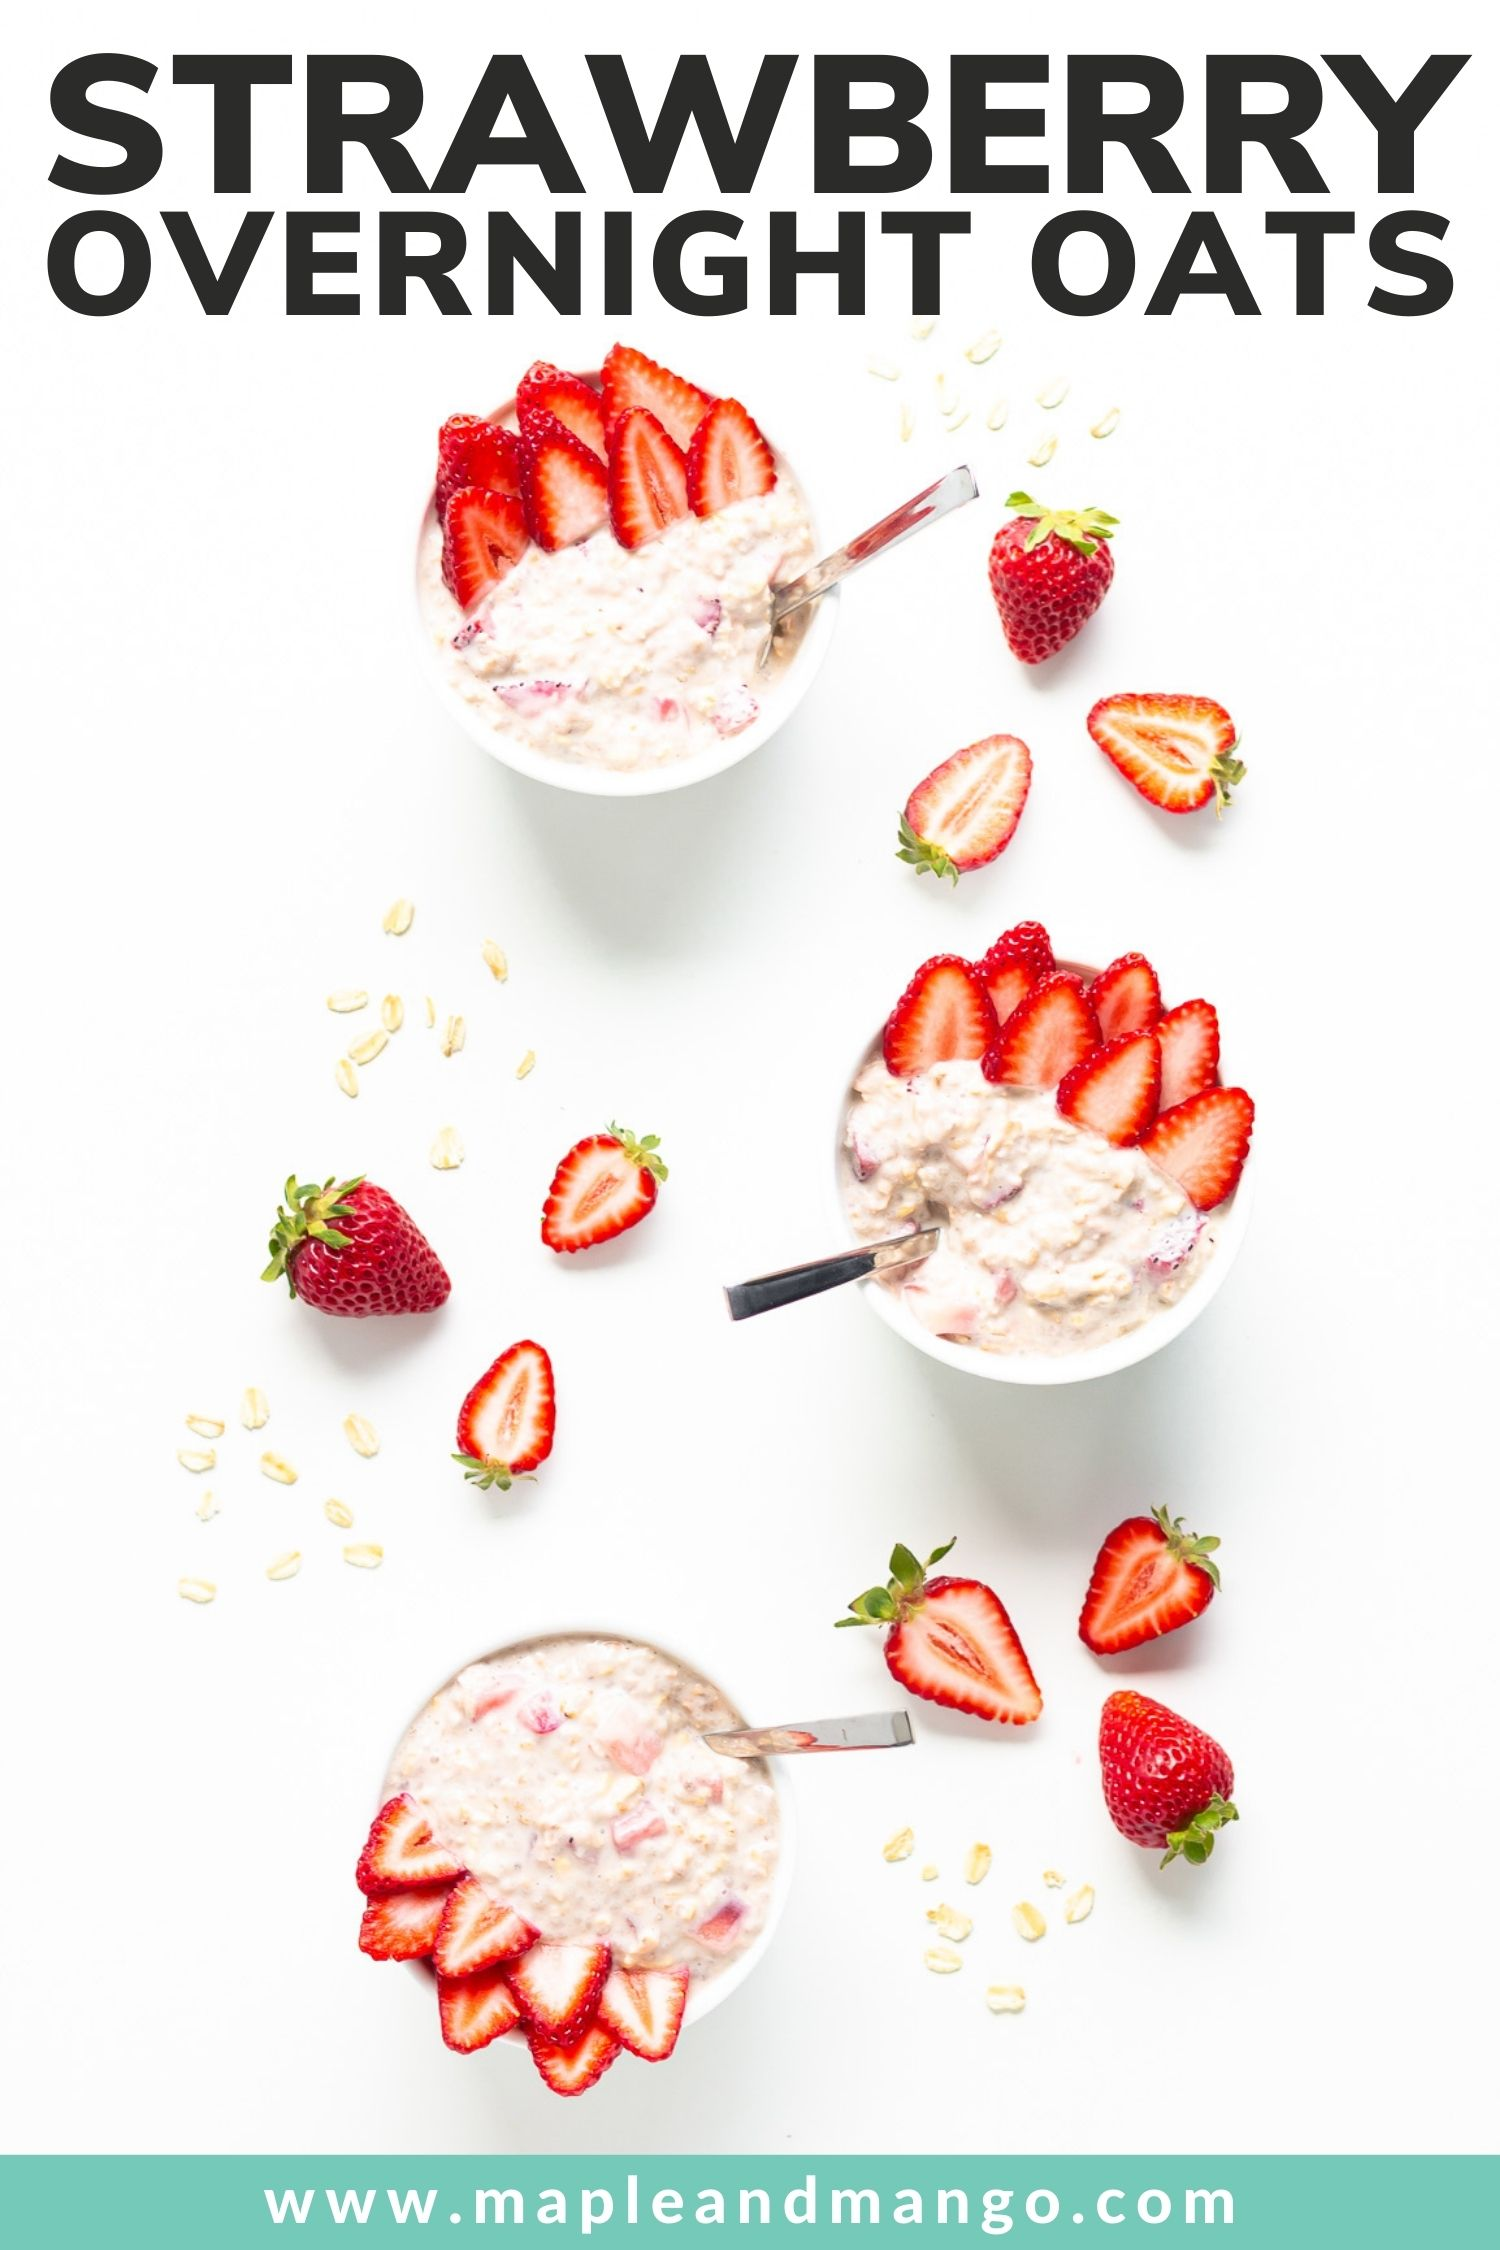 """Three bowls of overnight oats garnished with strawberry slices with text overlay """"Strawberry Overnight Oats""""."""